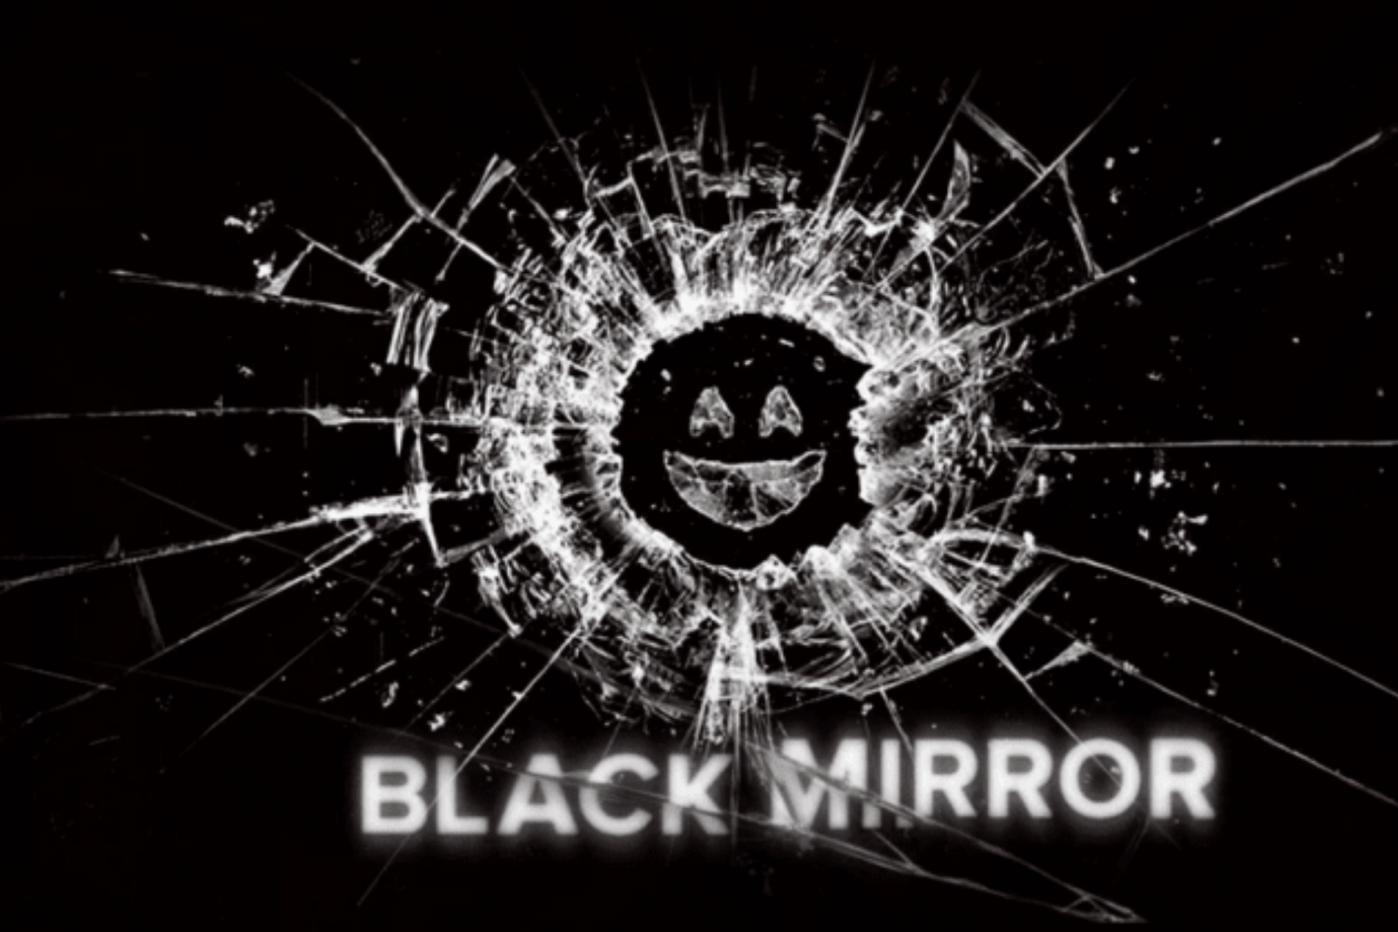 Black Mirror saison 5 sur Netflix : on regarde ou on zappe ?